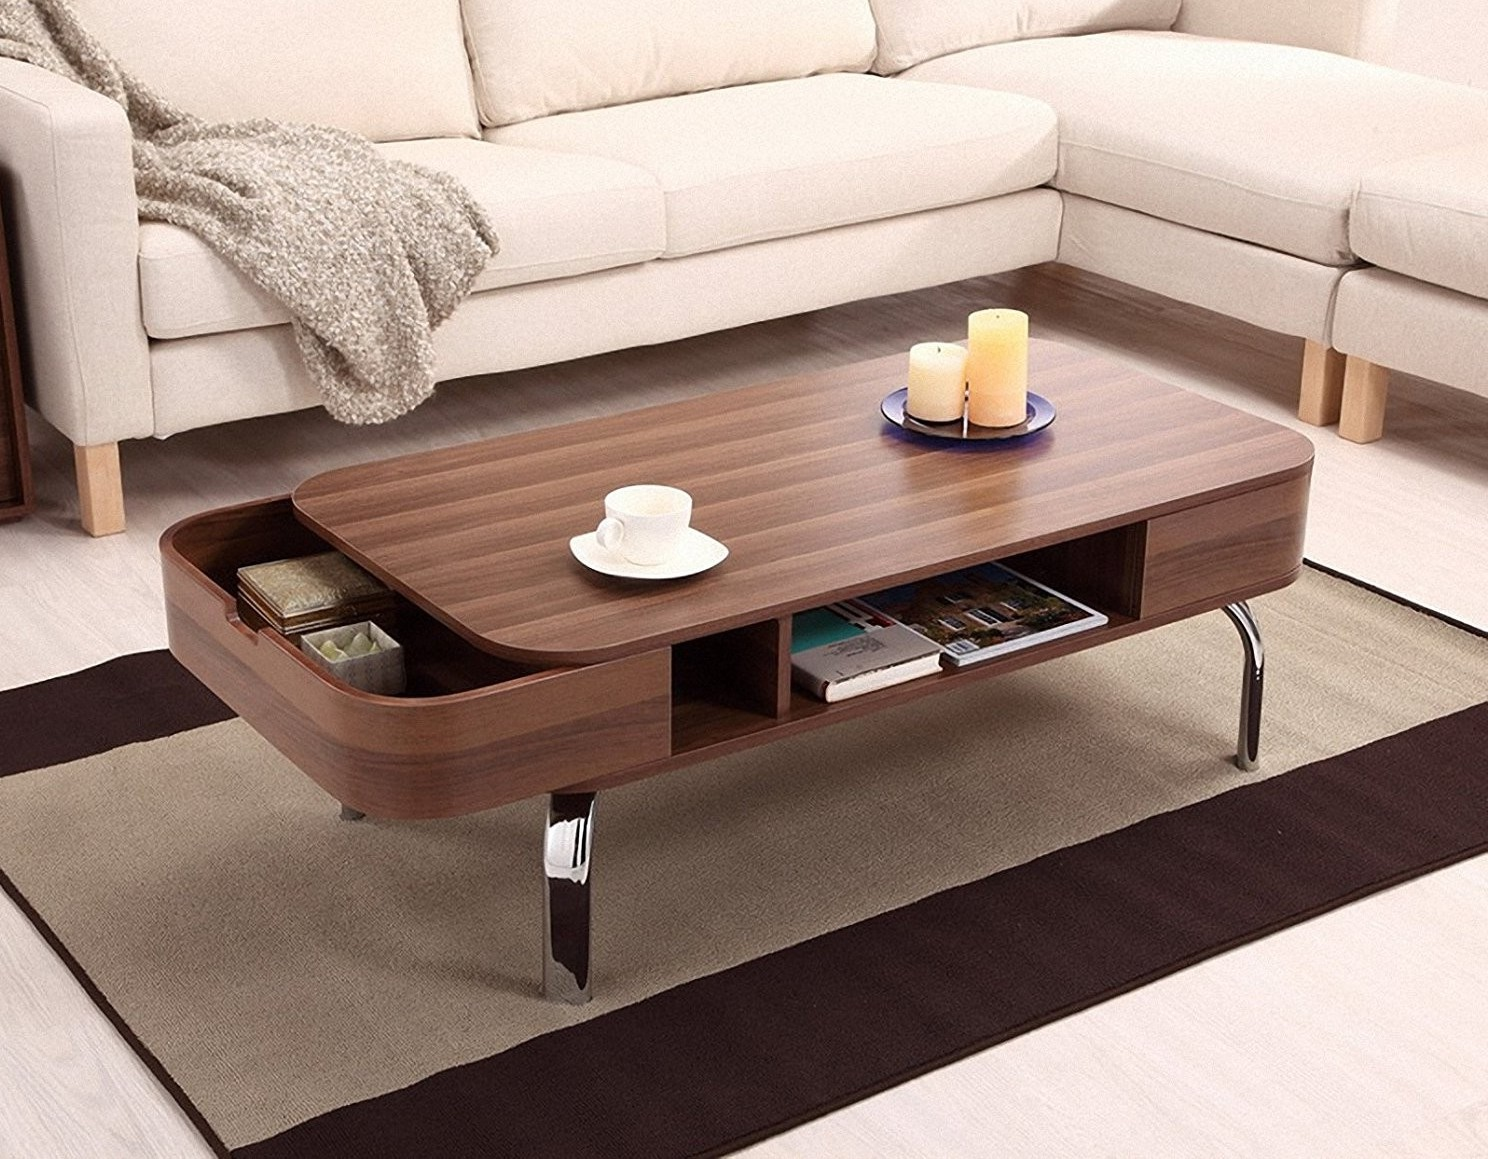 Modern Contemporary Square Coffee Tables Coffee Tables Under 200 For Modern Living Room Focal